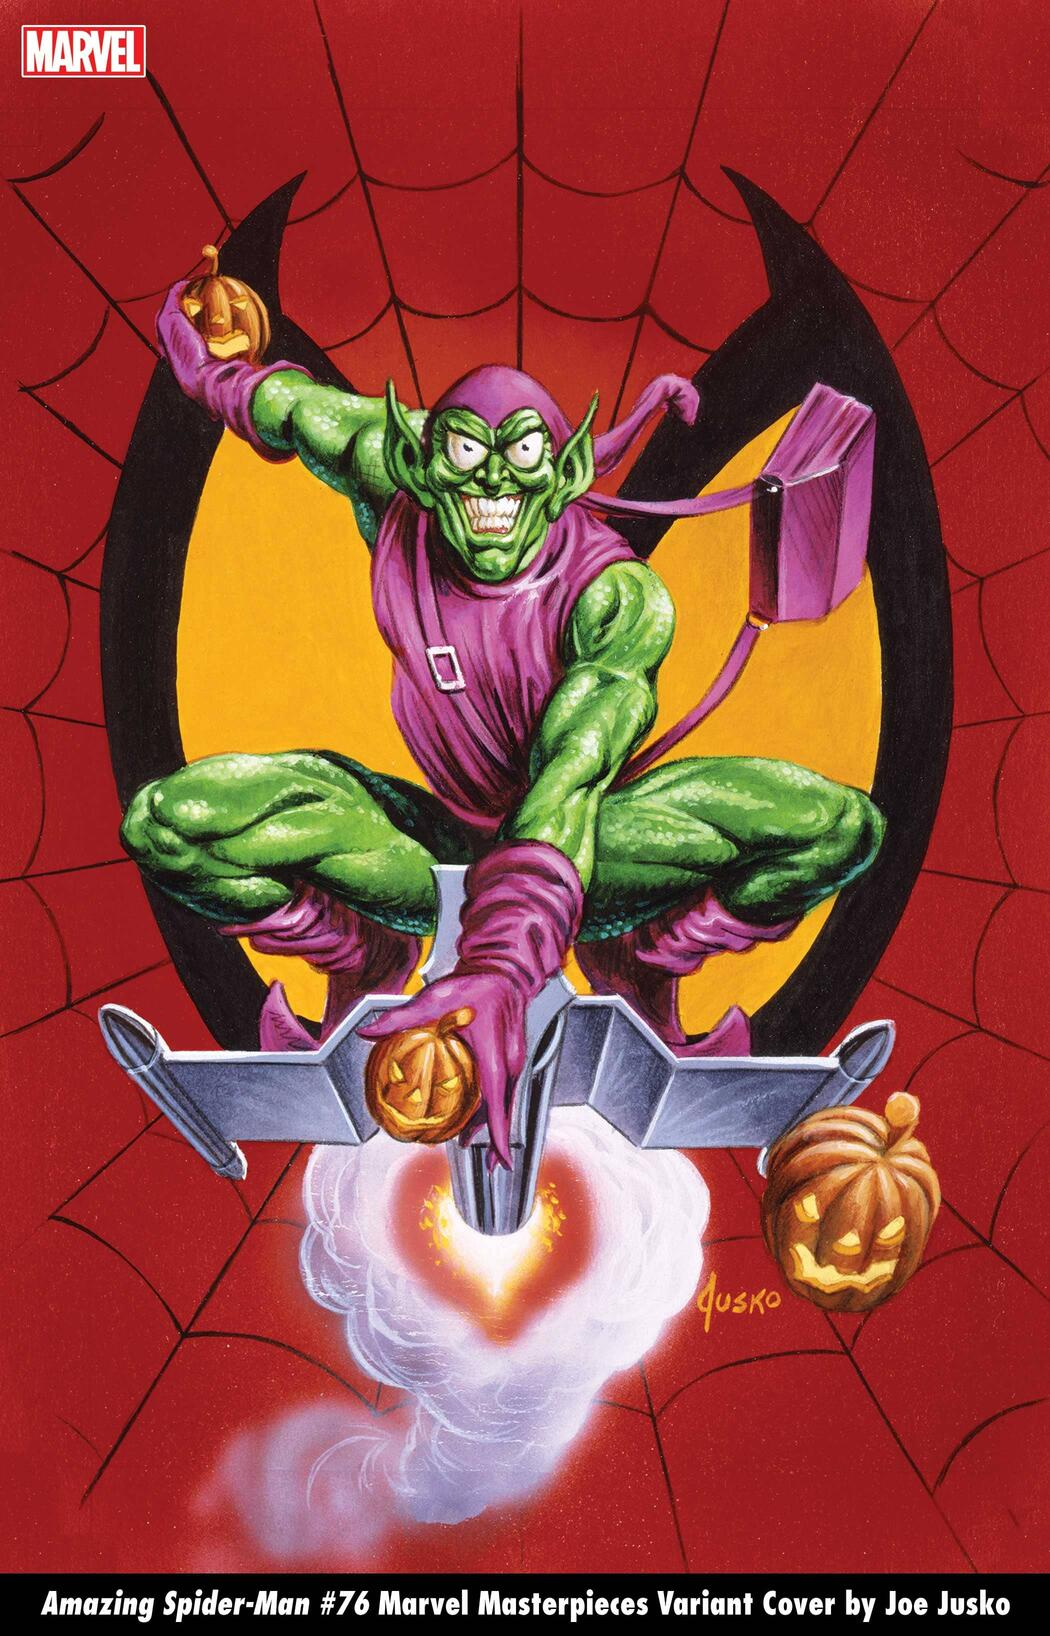 AMAZING SPIDER-MAN #76 MARVEL MASTERPIECES VARIANT COVER by JOE JUSKO